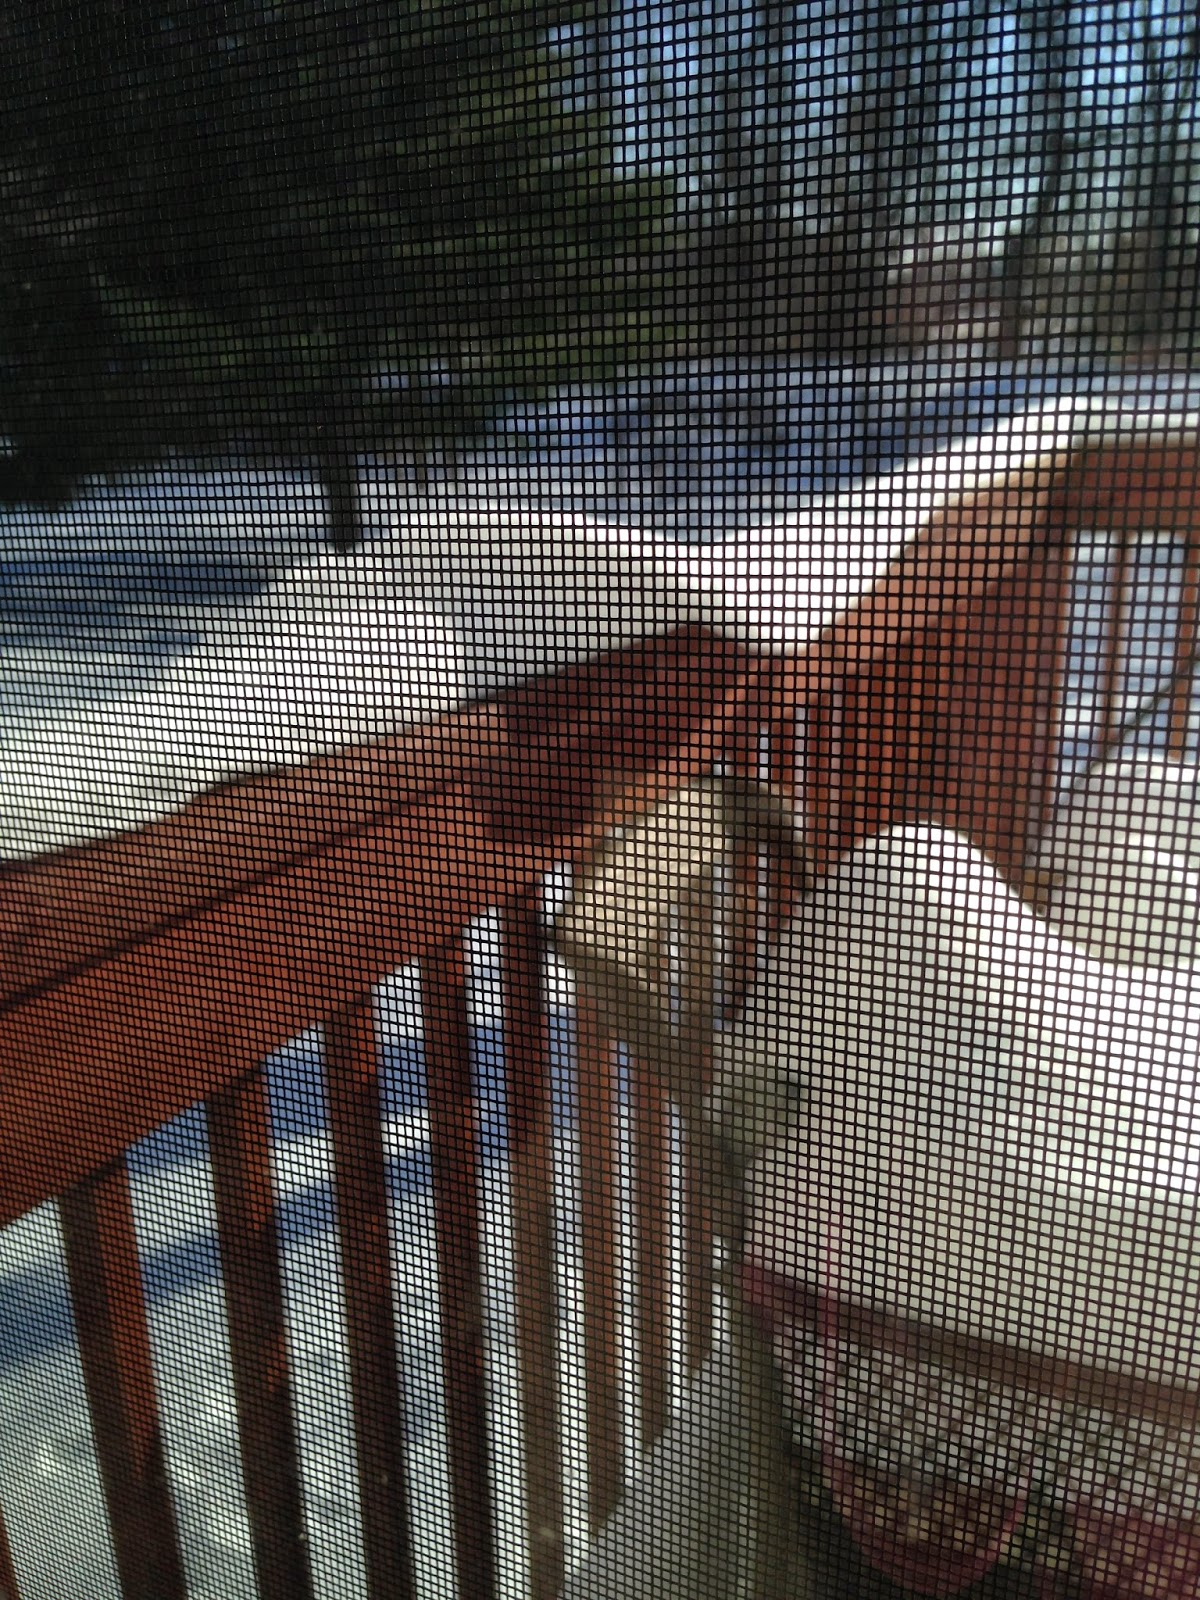 snow collapsing from porch railing